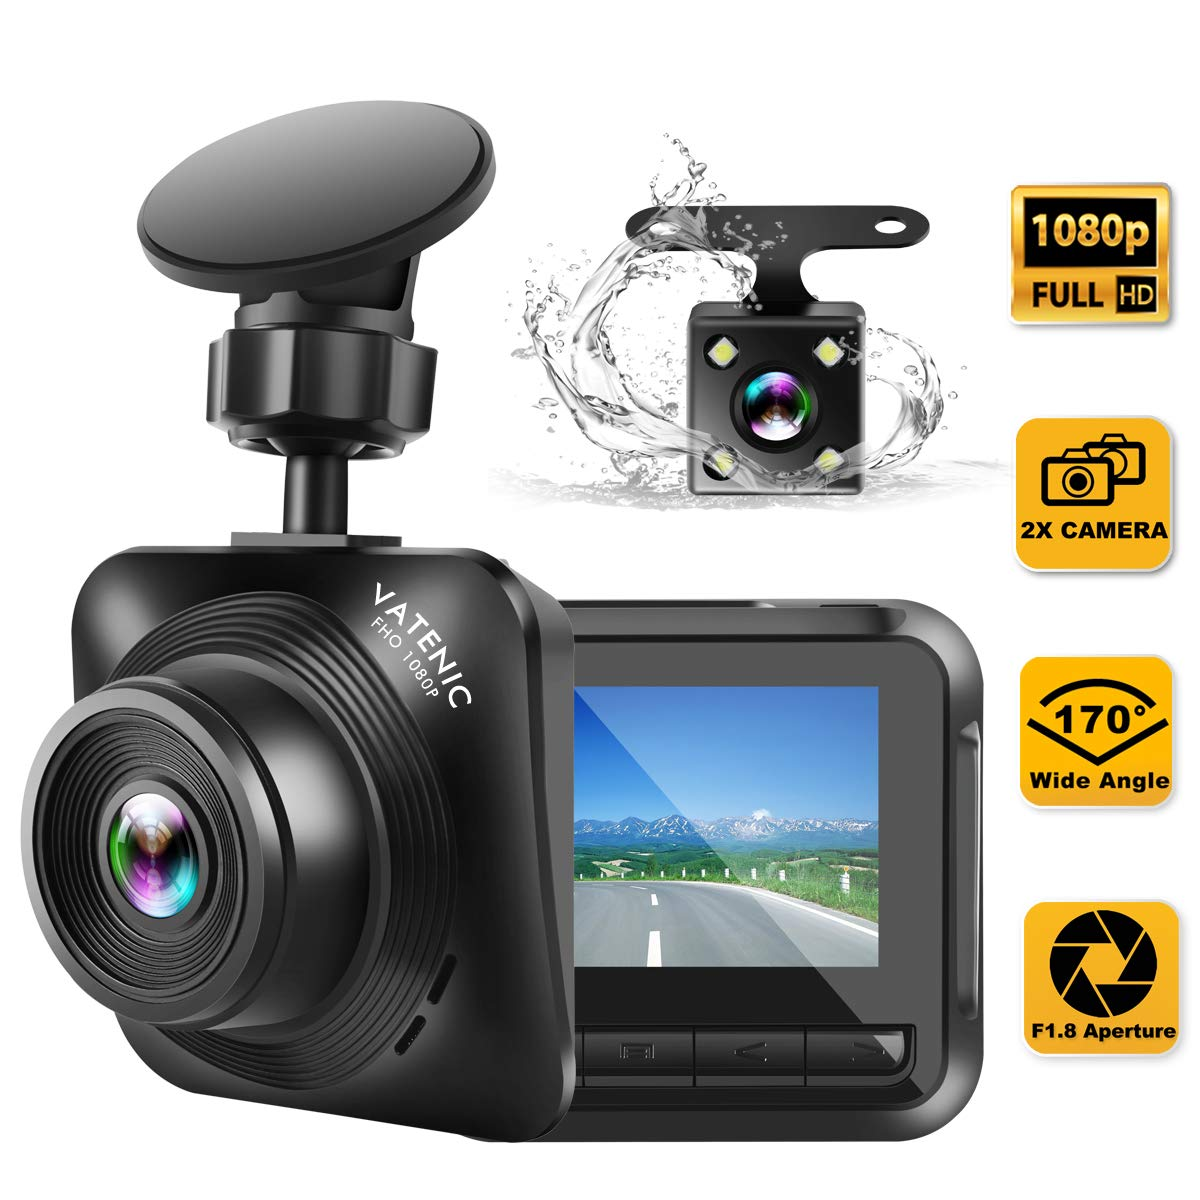 Dash Cam Car Camera Recorder FHD 1080P Front and Rear Cameras,Driving Loop Recording,2.2 Inch LCD Screen 170°Wide Angle, WDR,Night Vision, G-Sensor, Motion Detection, Parking Monitor by VATENIC